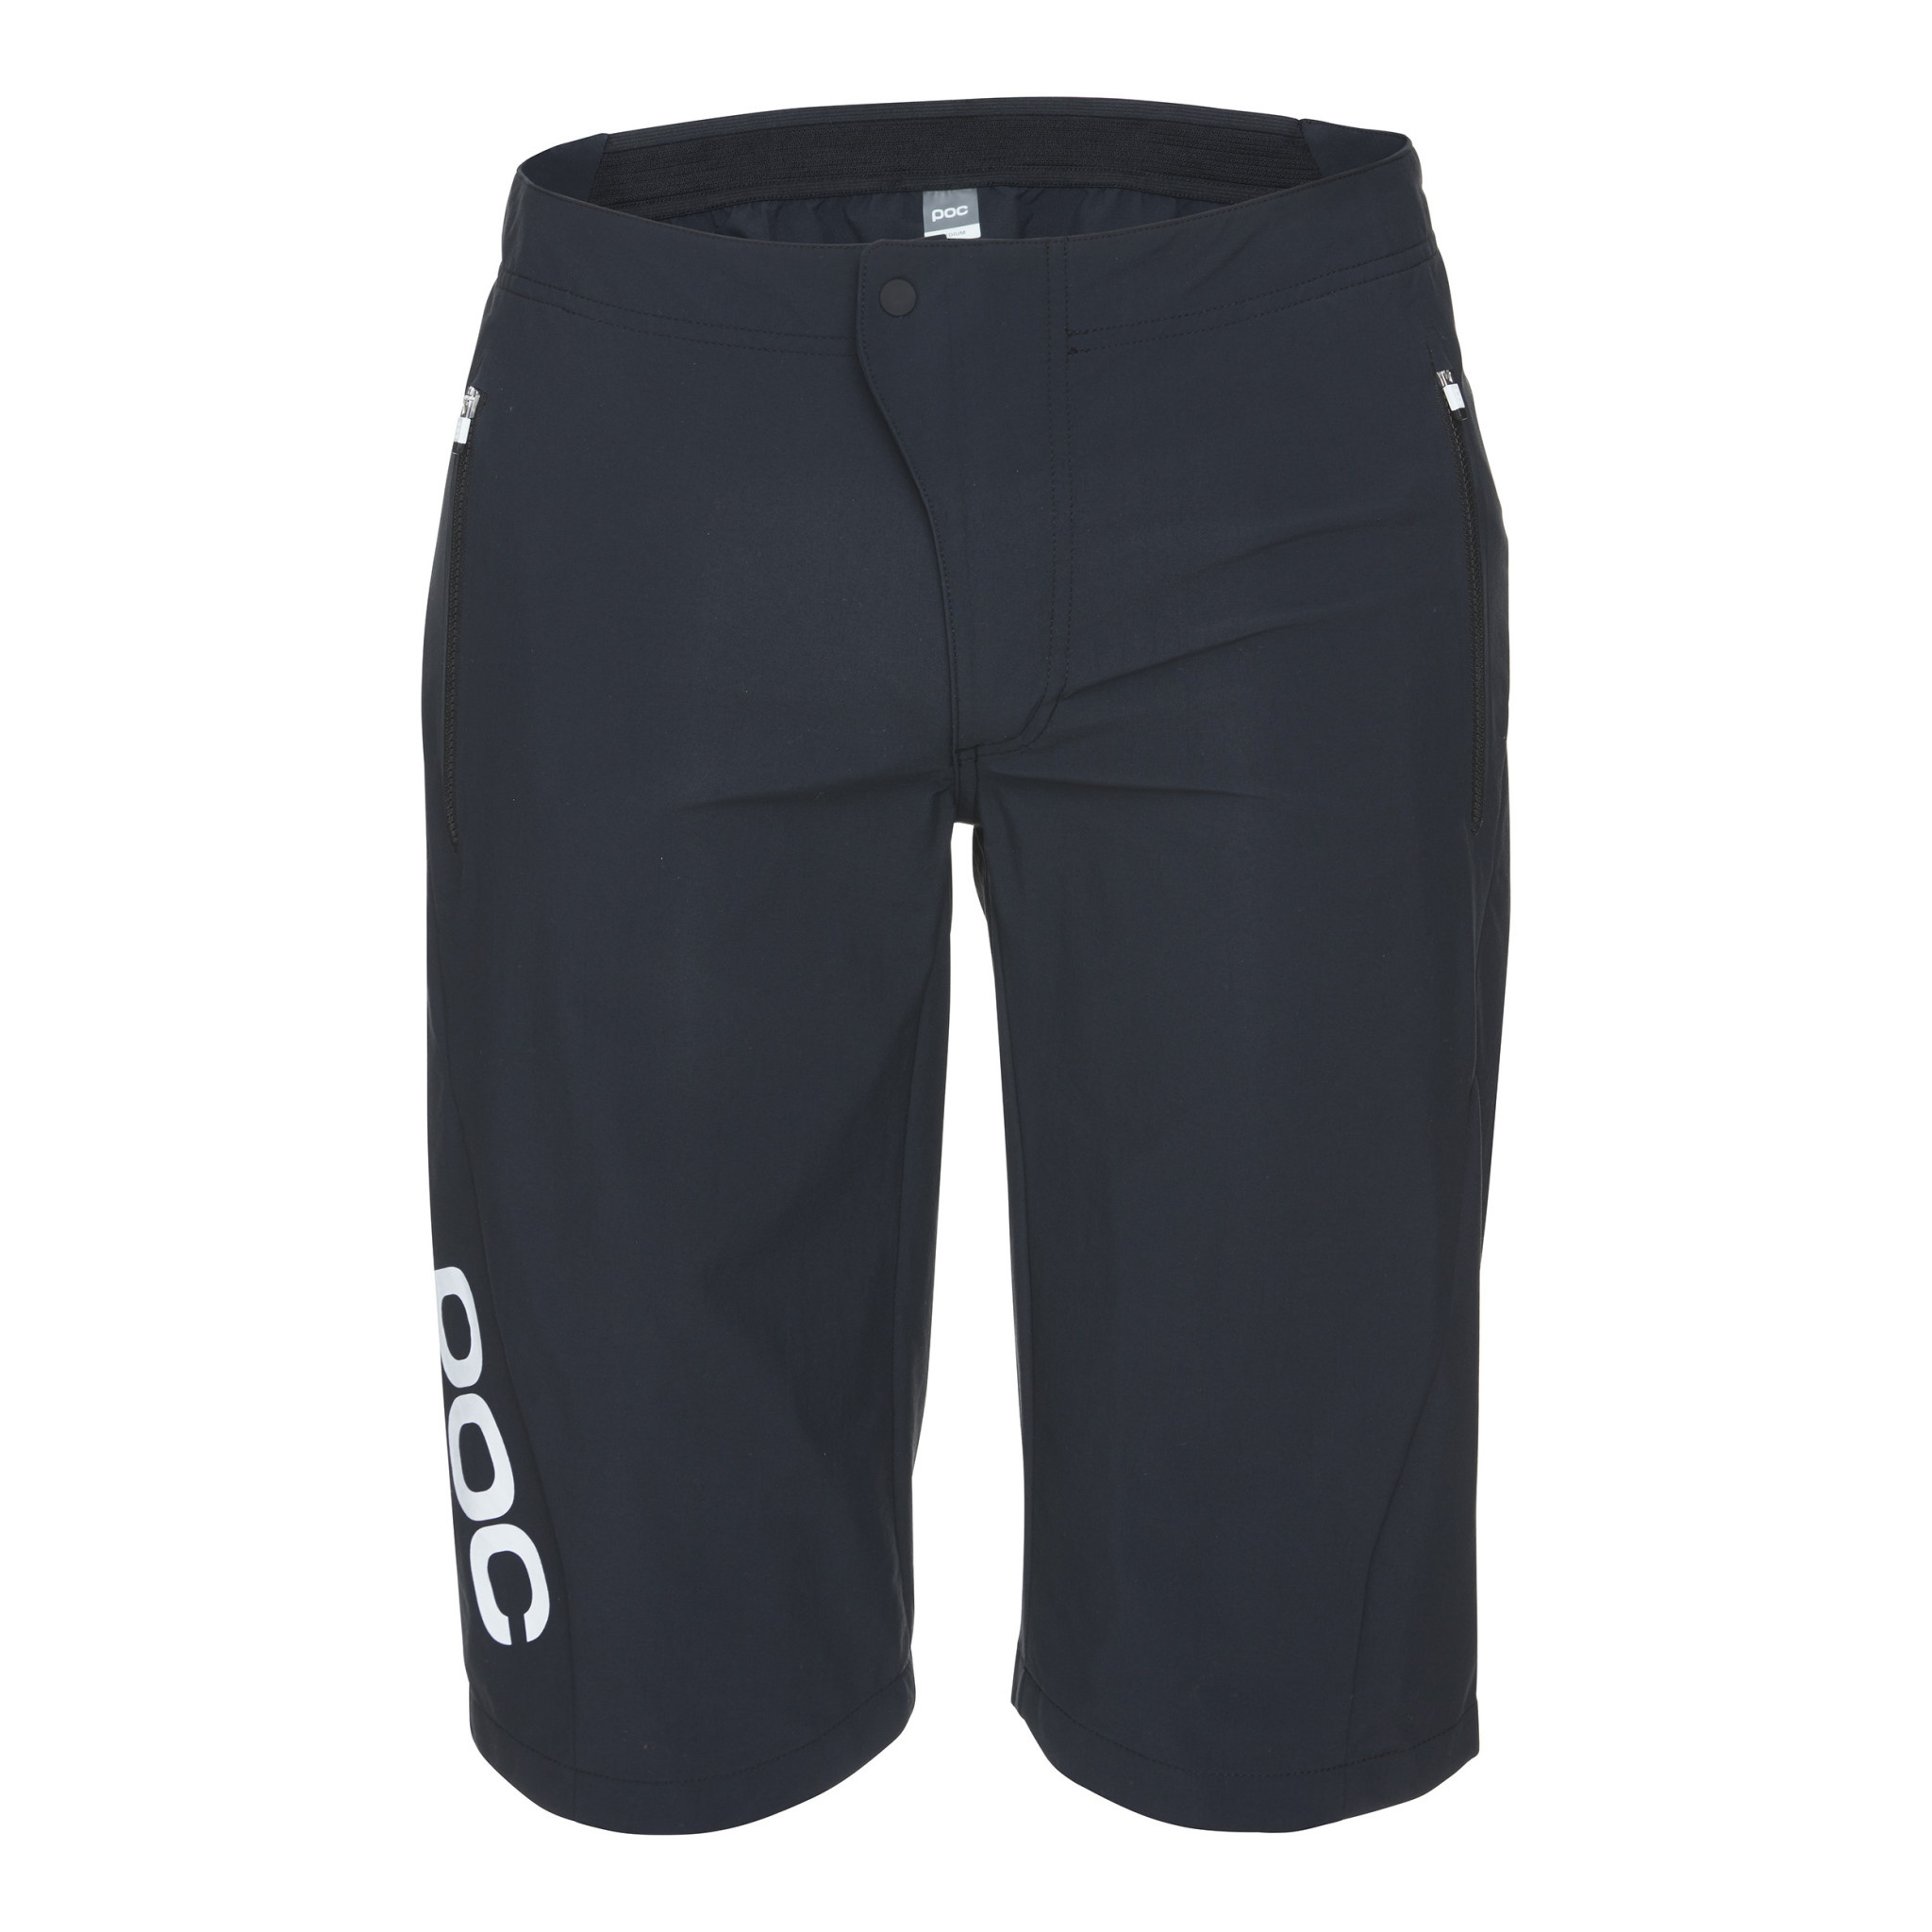 POC Shorts POC H Essential Enduro